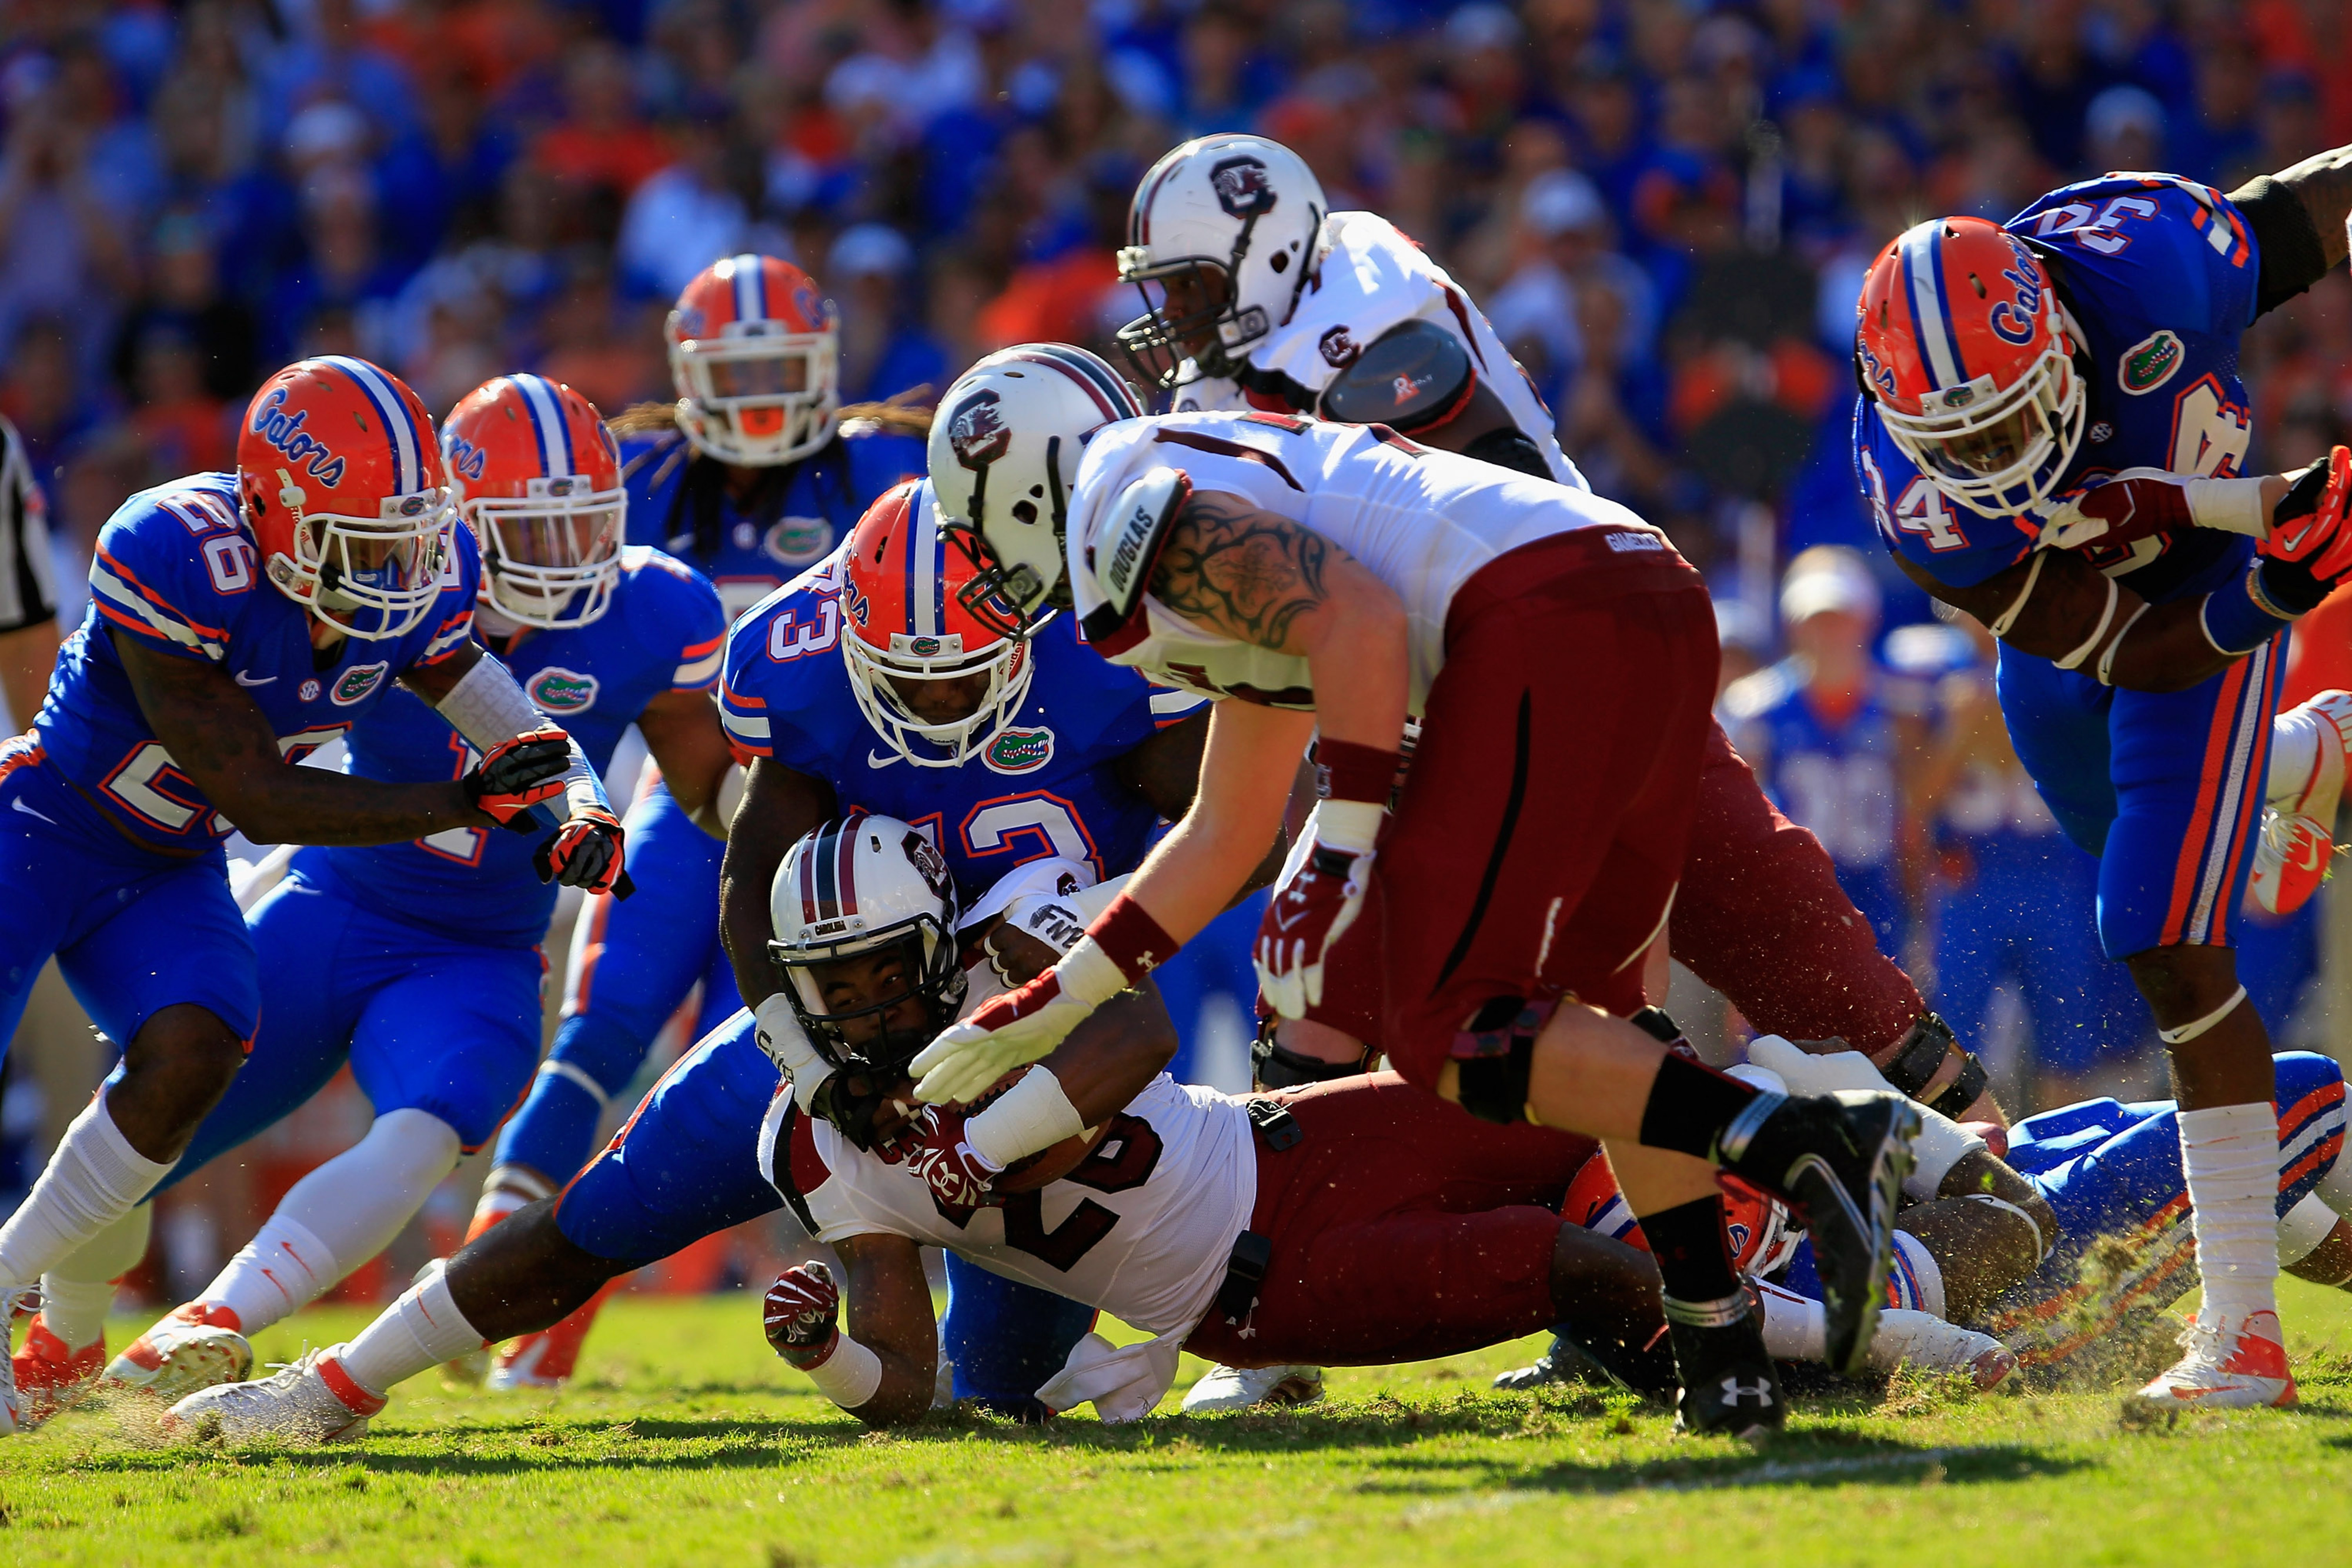 The Gators are peaking as they head into Jacksonville. Well, isn't that just dandy?